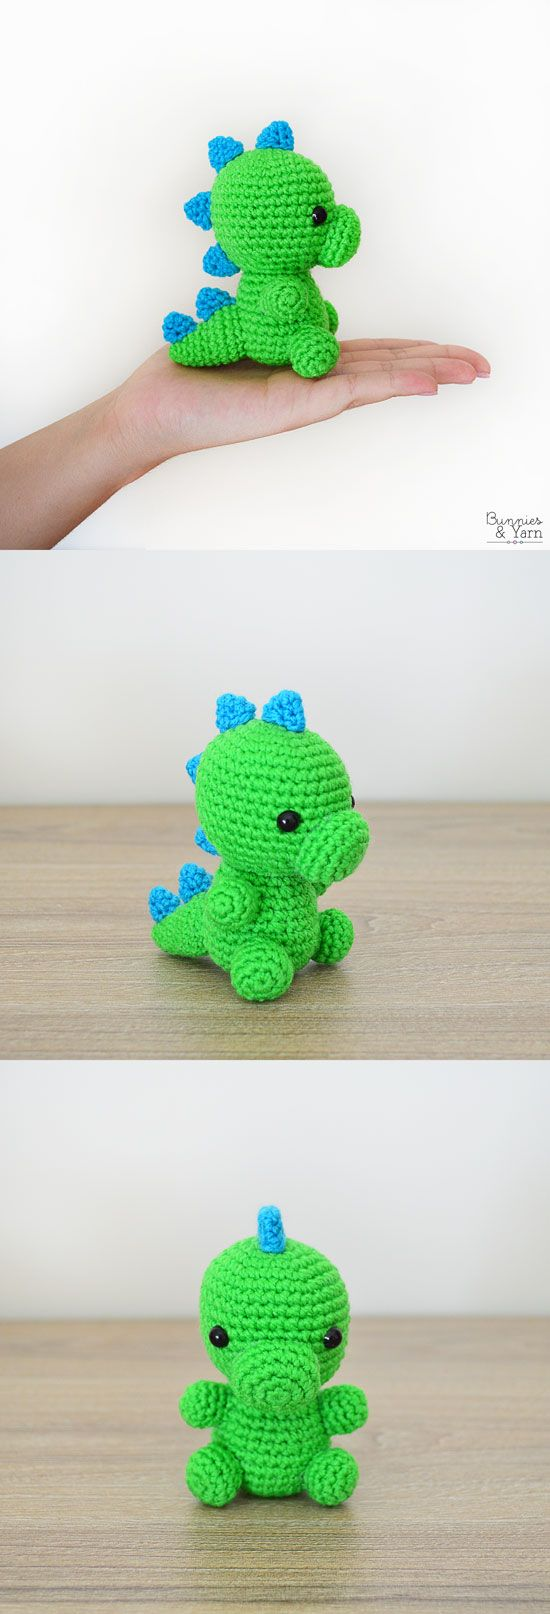 CROCHET PATTERN in English – Dinosaur – Baby #5 – Babies Collection – Amigurumi Toy – Instant PDF Download